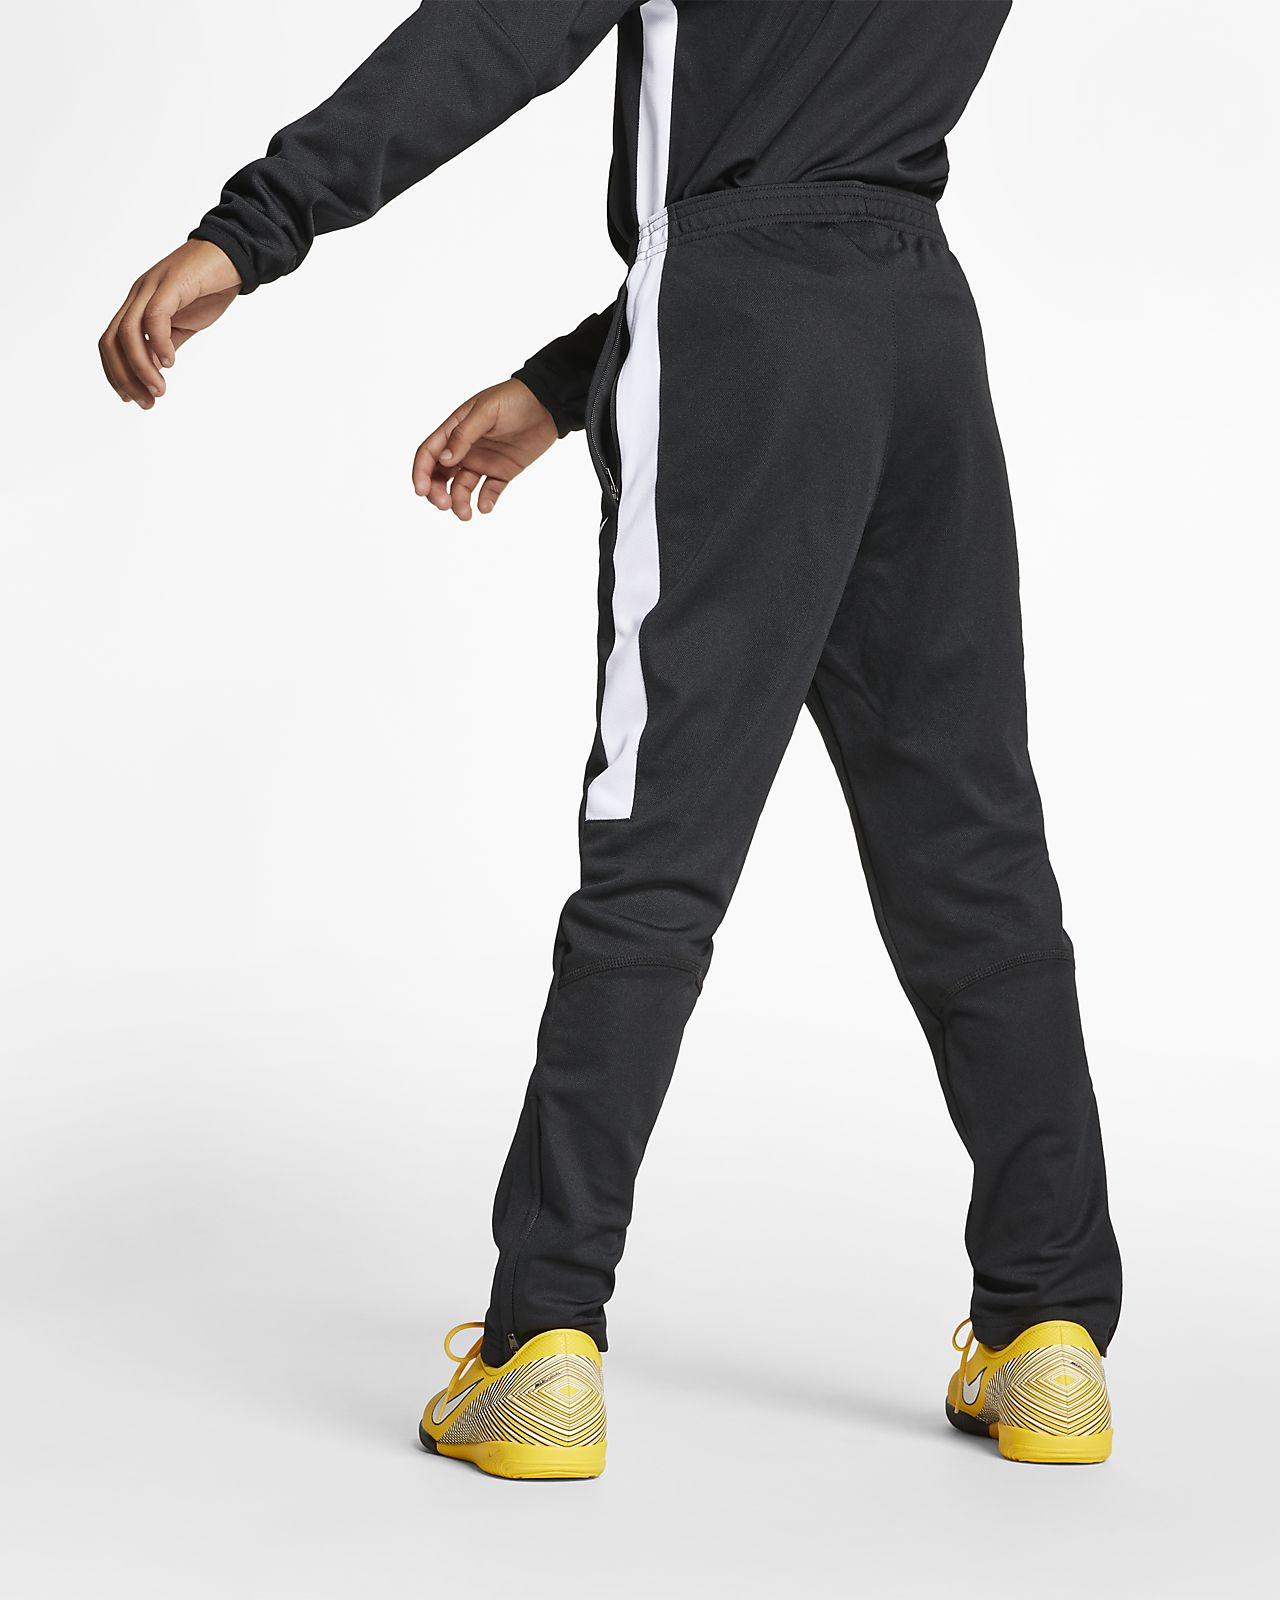 81ecd2515 Nike Dri-FIT Academy Older Kids' Football Tracksuit. Nike.com DK